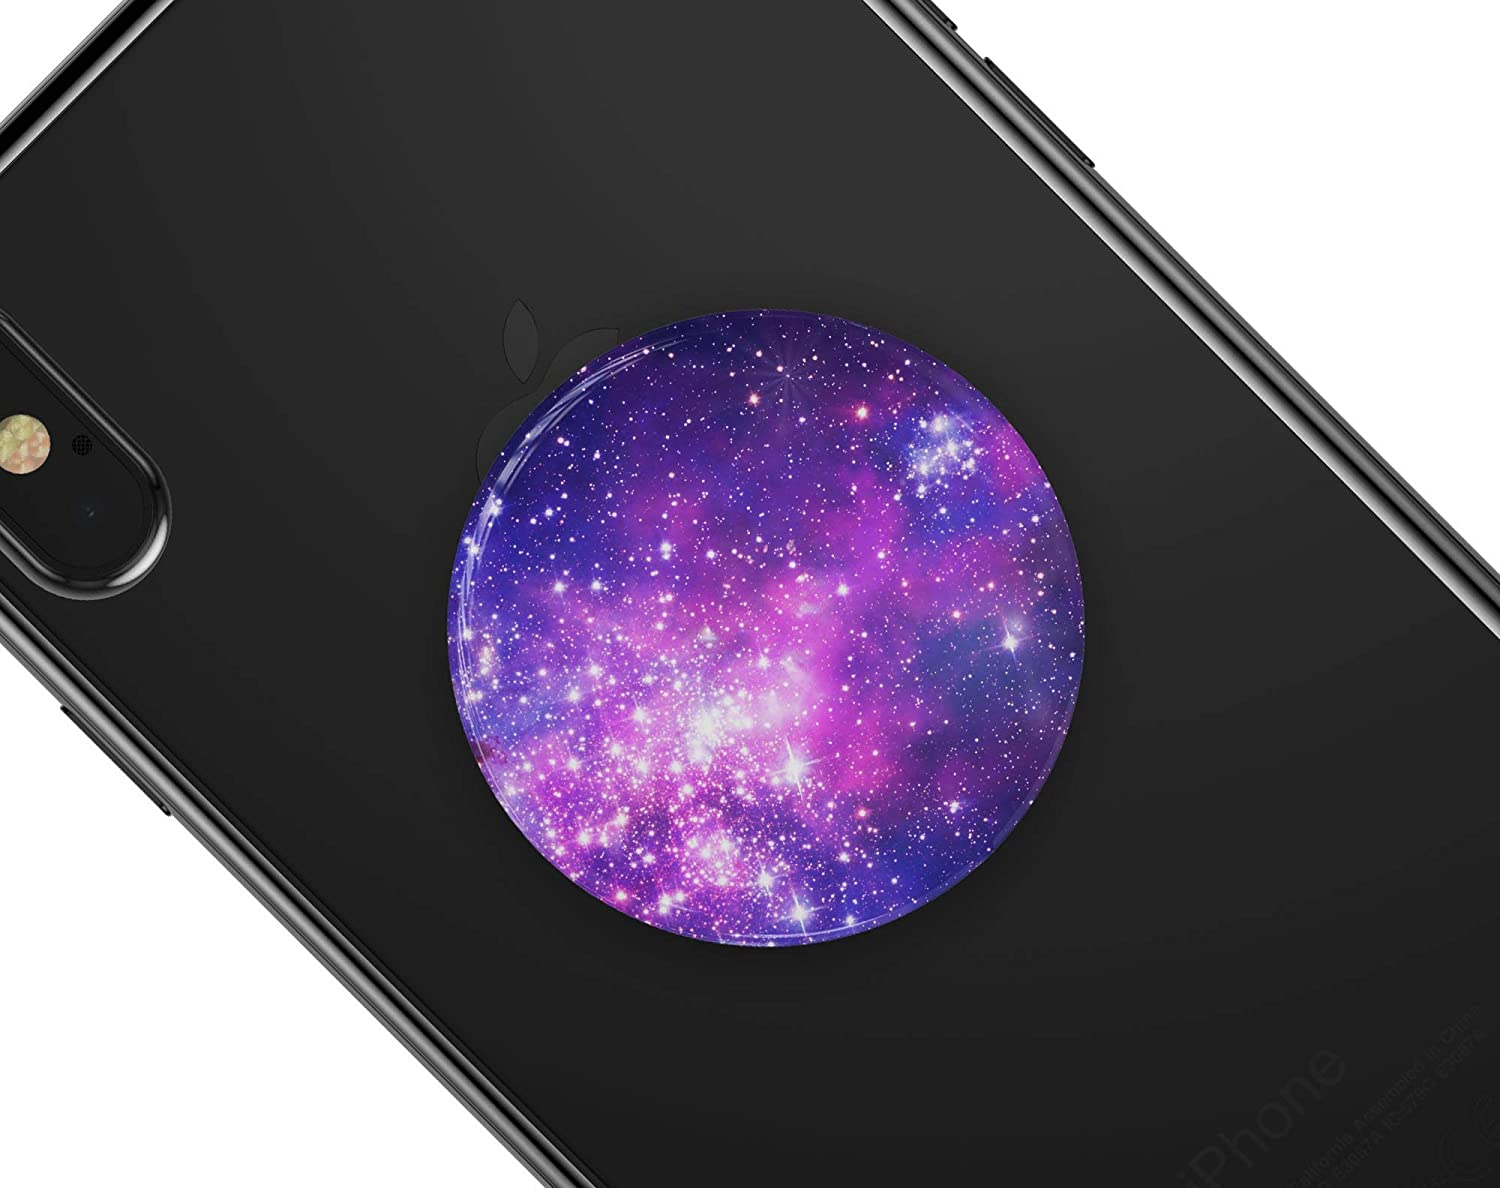 DesignSkinz Premium Decal Sticker Skin-Kit for PopSockets Smartphone Extendable Grip /& Stand Purple /& Pink Space